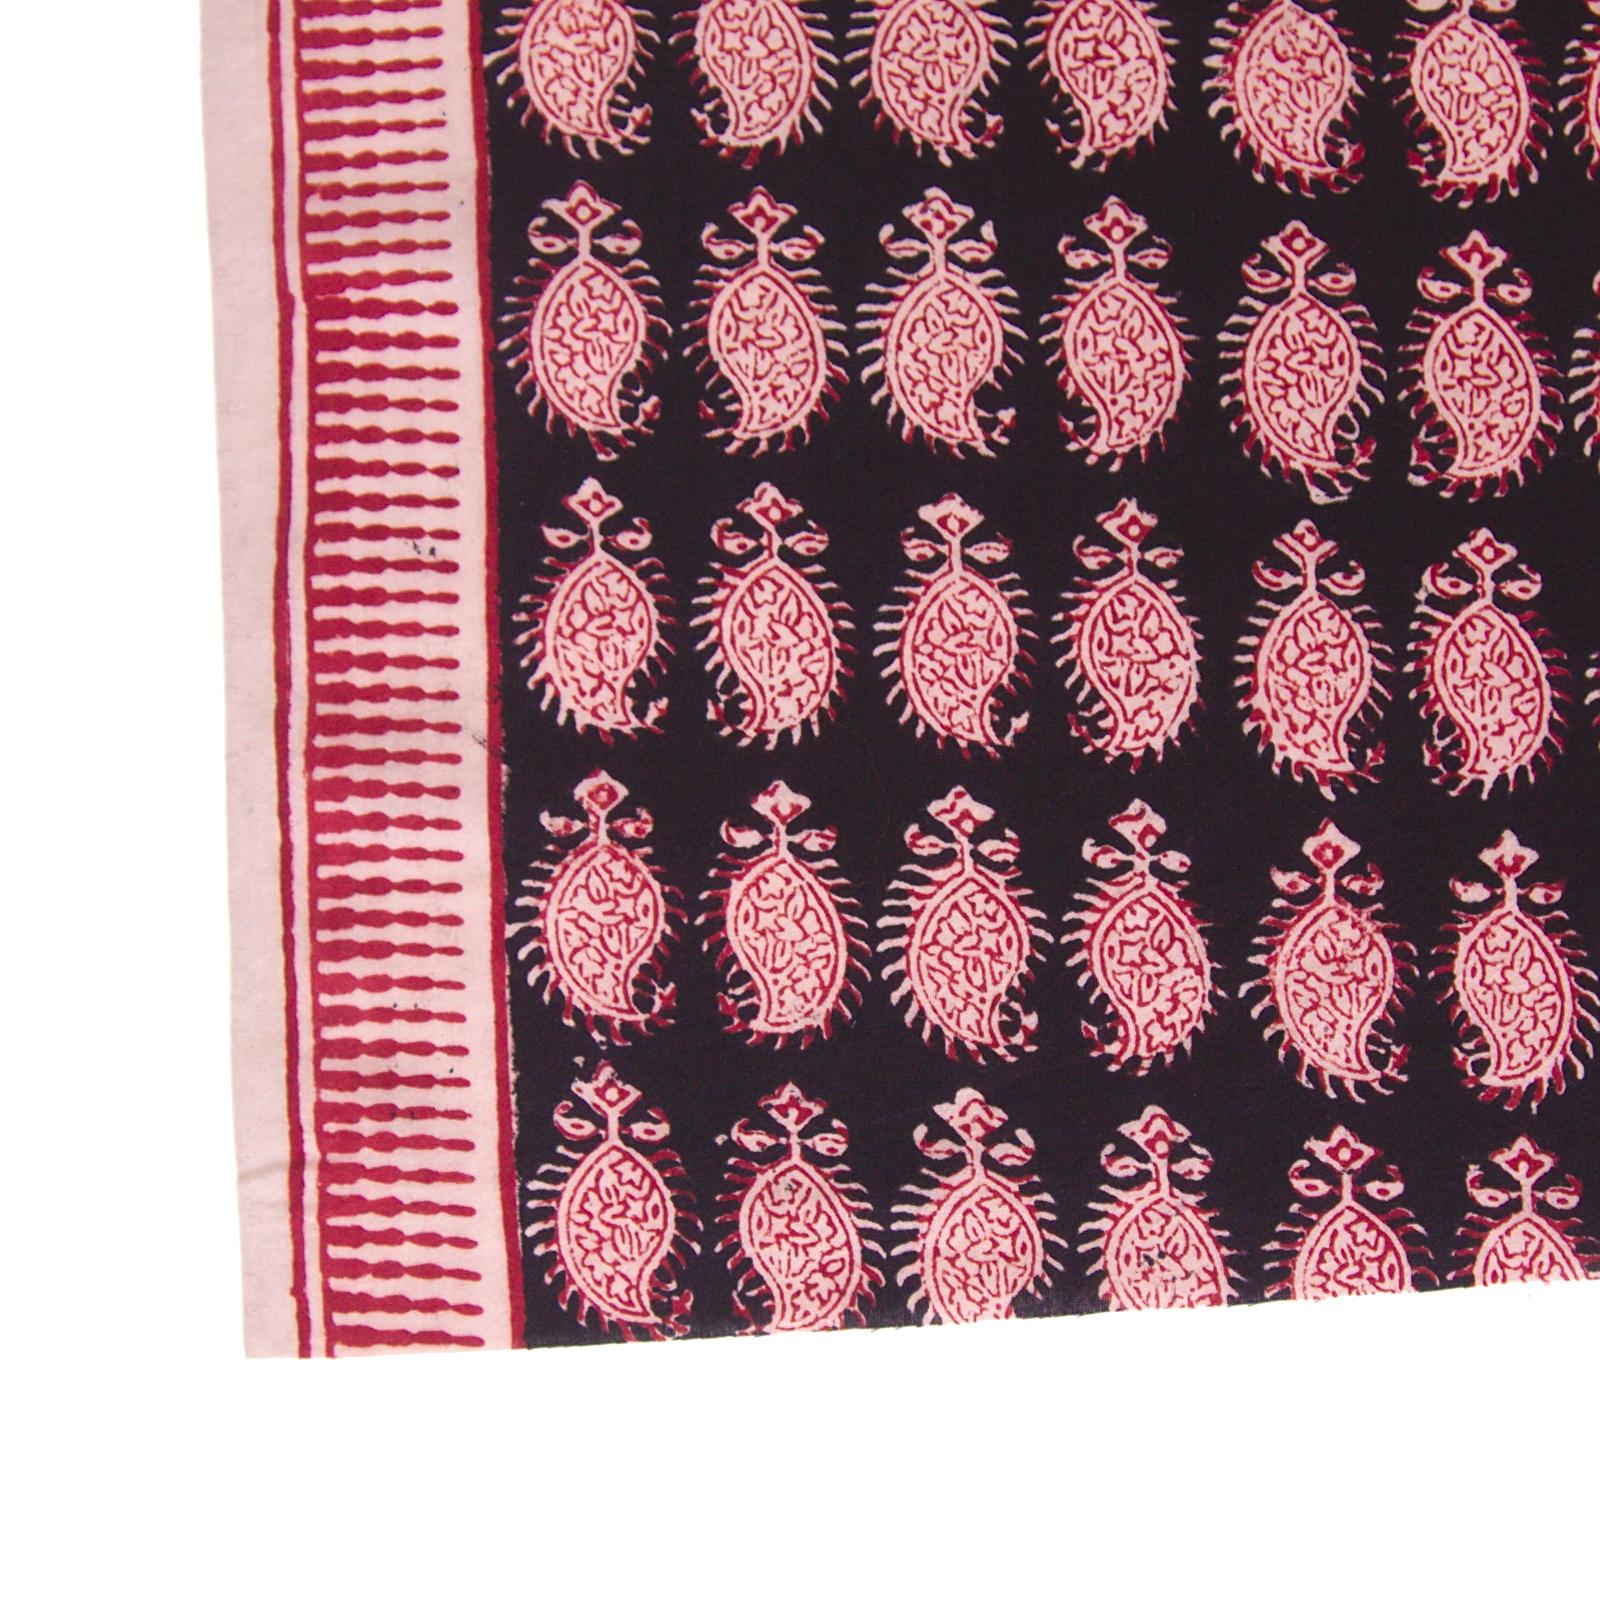 100% Block -Printed Cotton Fabric From India - Cactus Design - Iron Rust Black & Alizarin Red Dyes - Border - Live